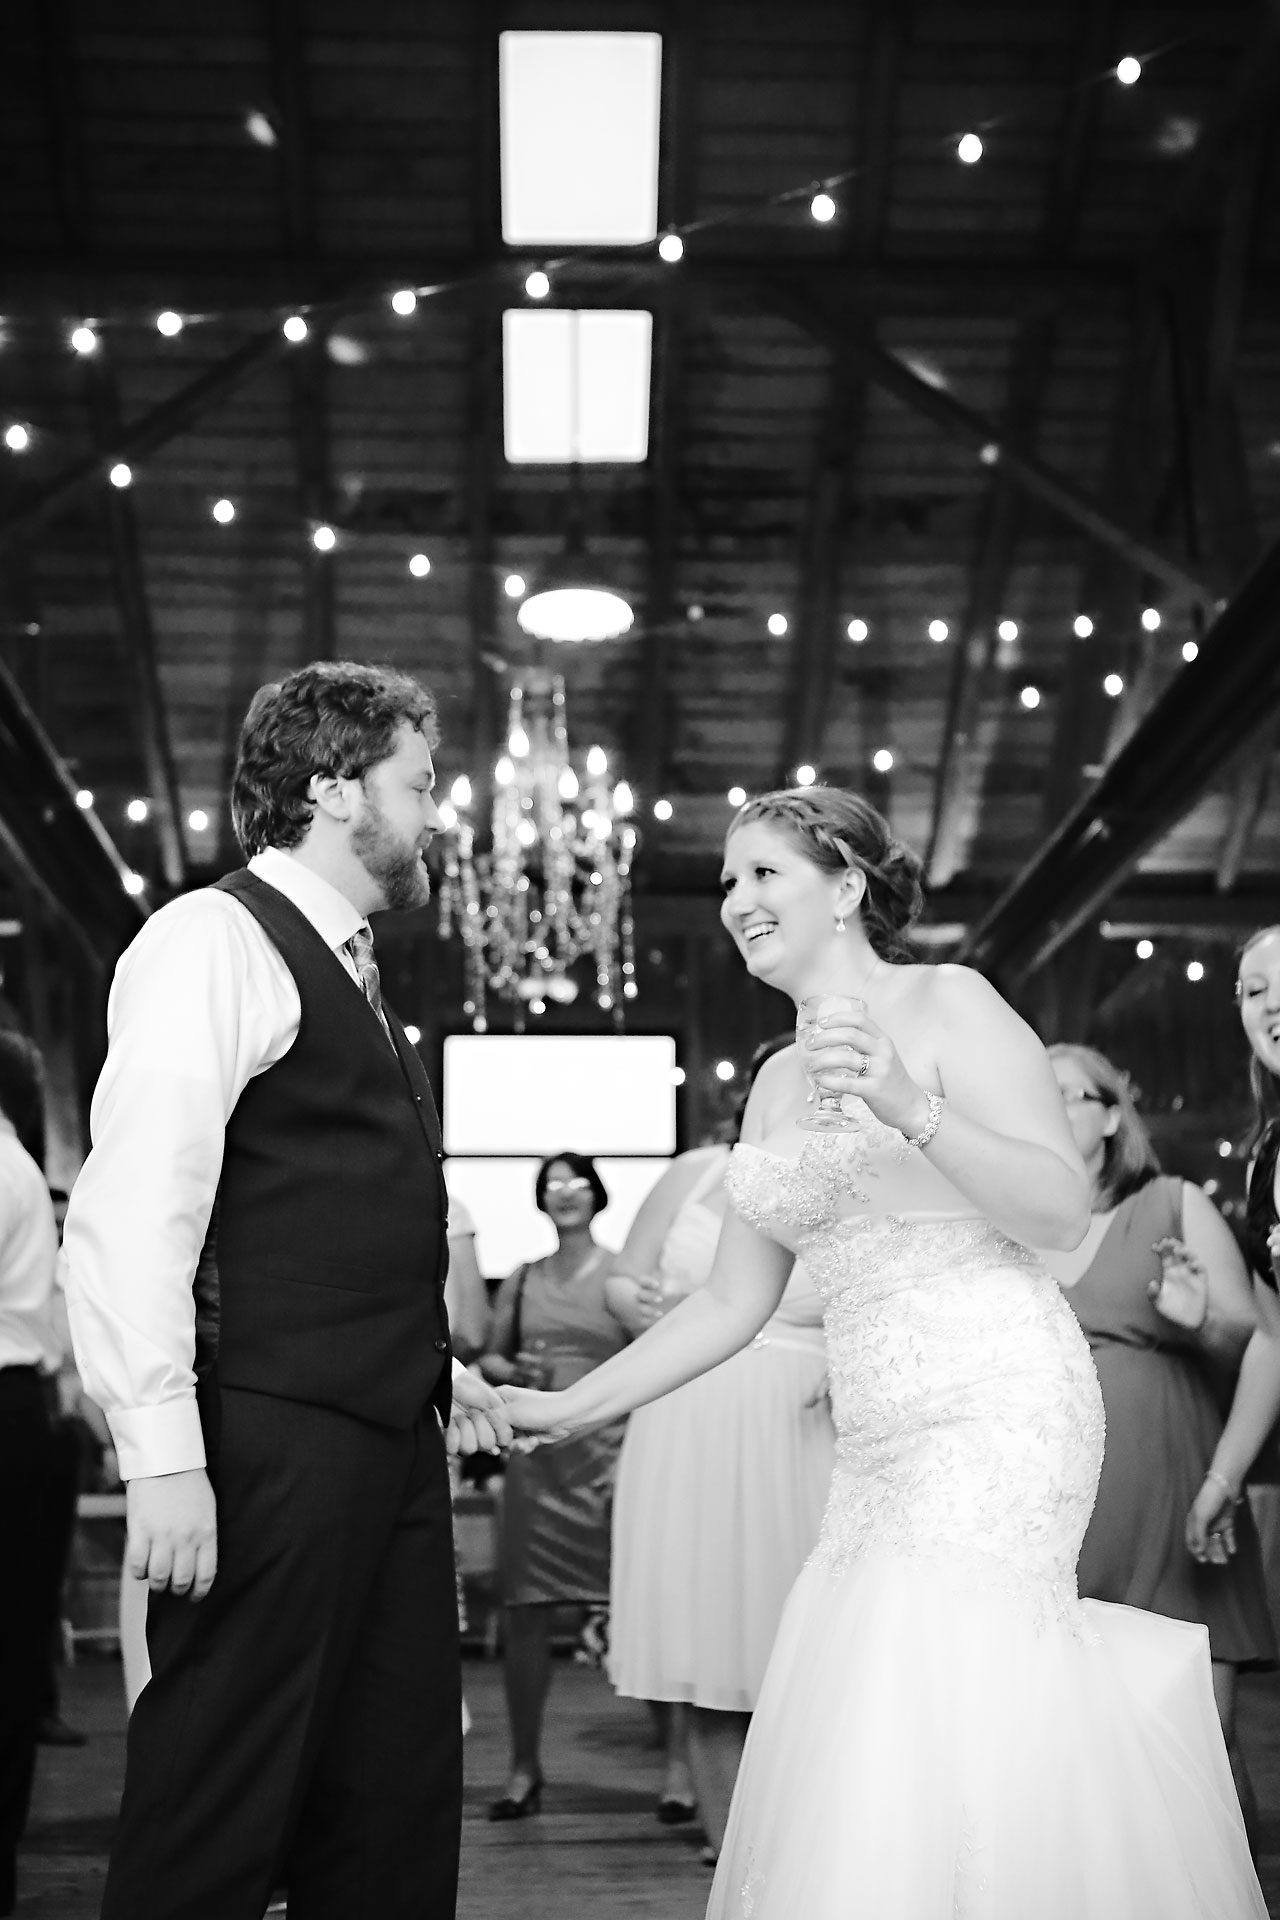 Nikki Weston Traders Point Creamery Zionsville Wedding 351